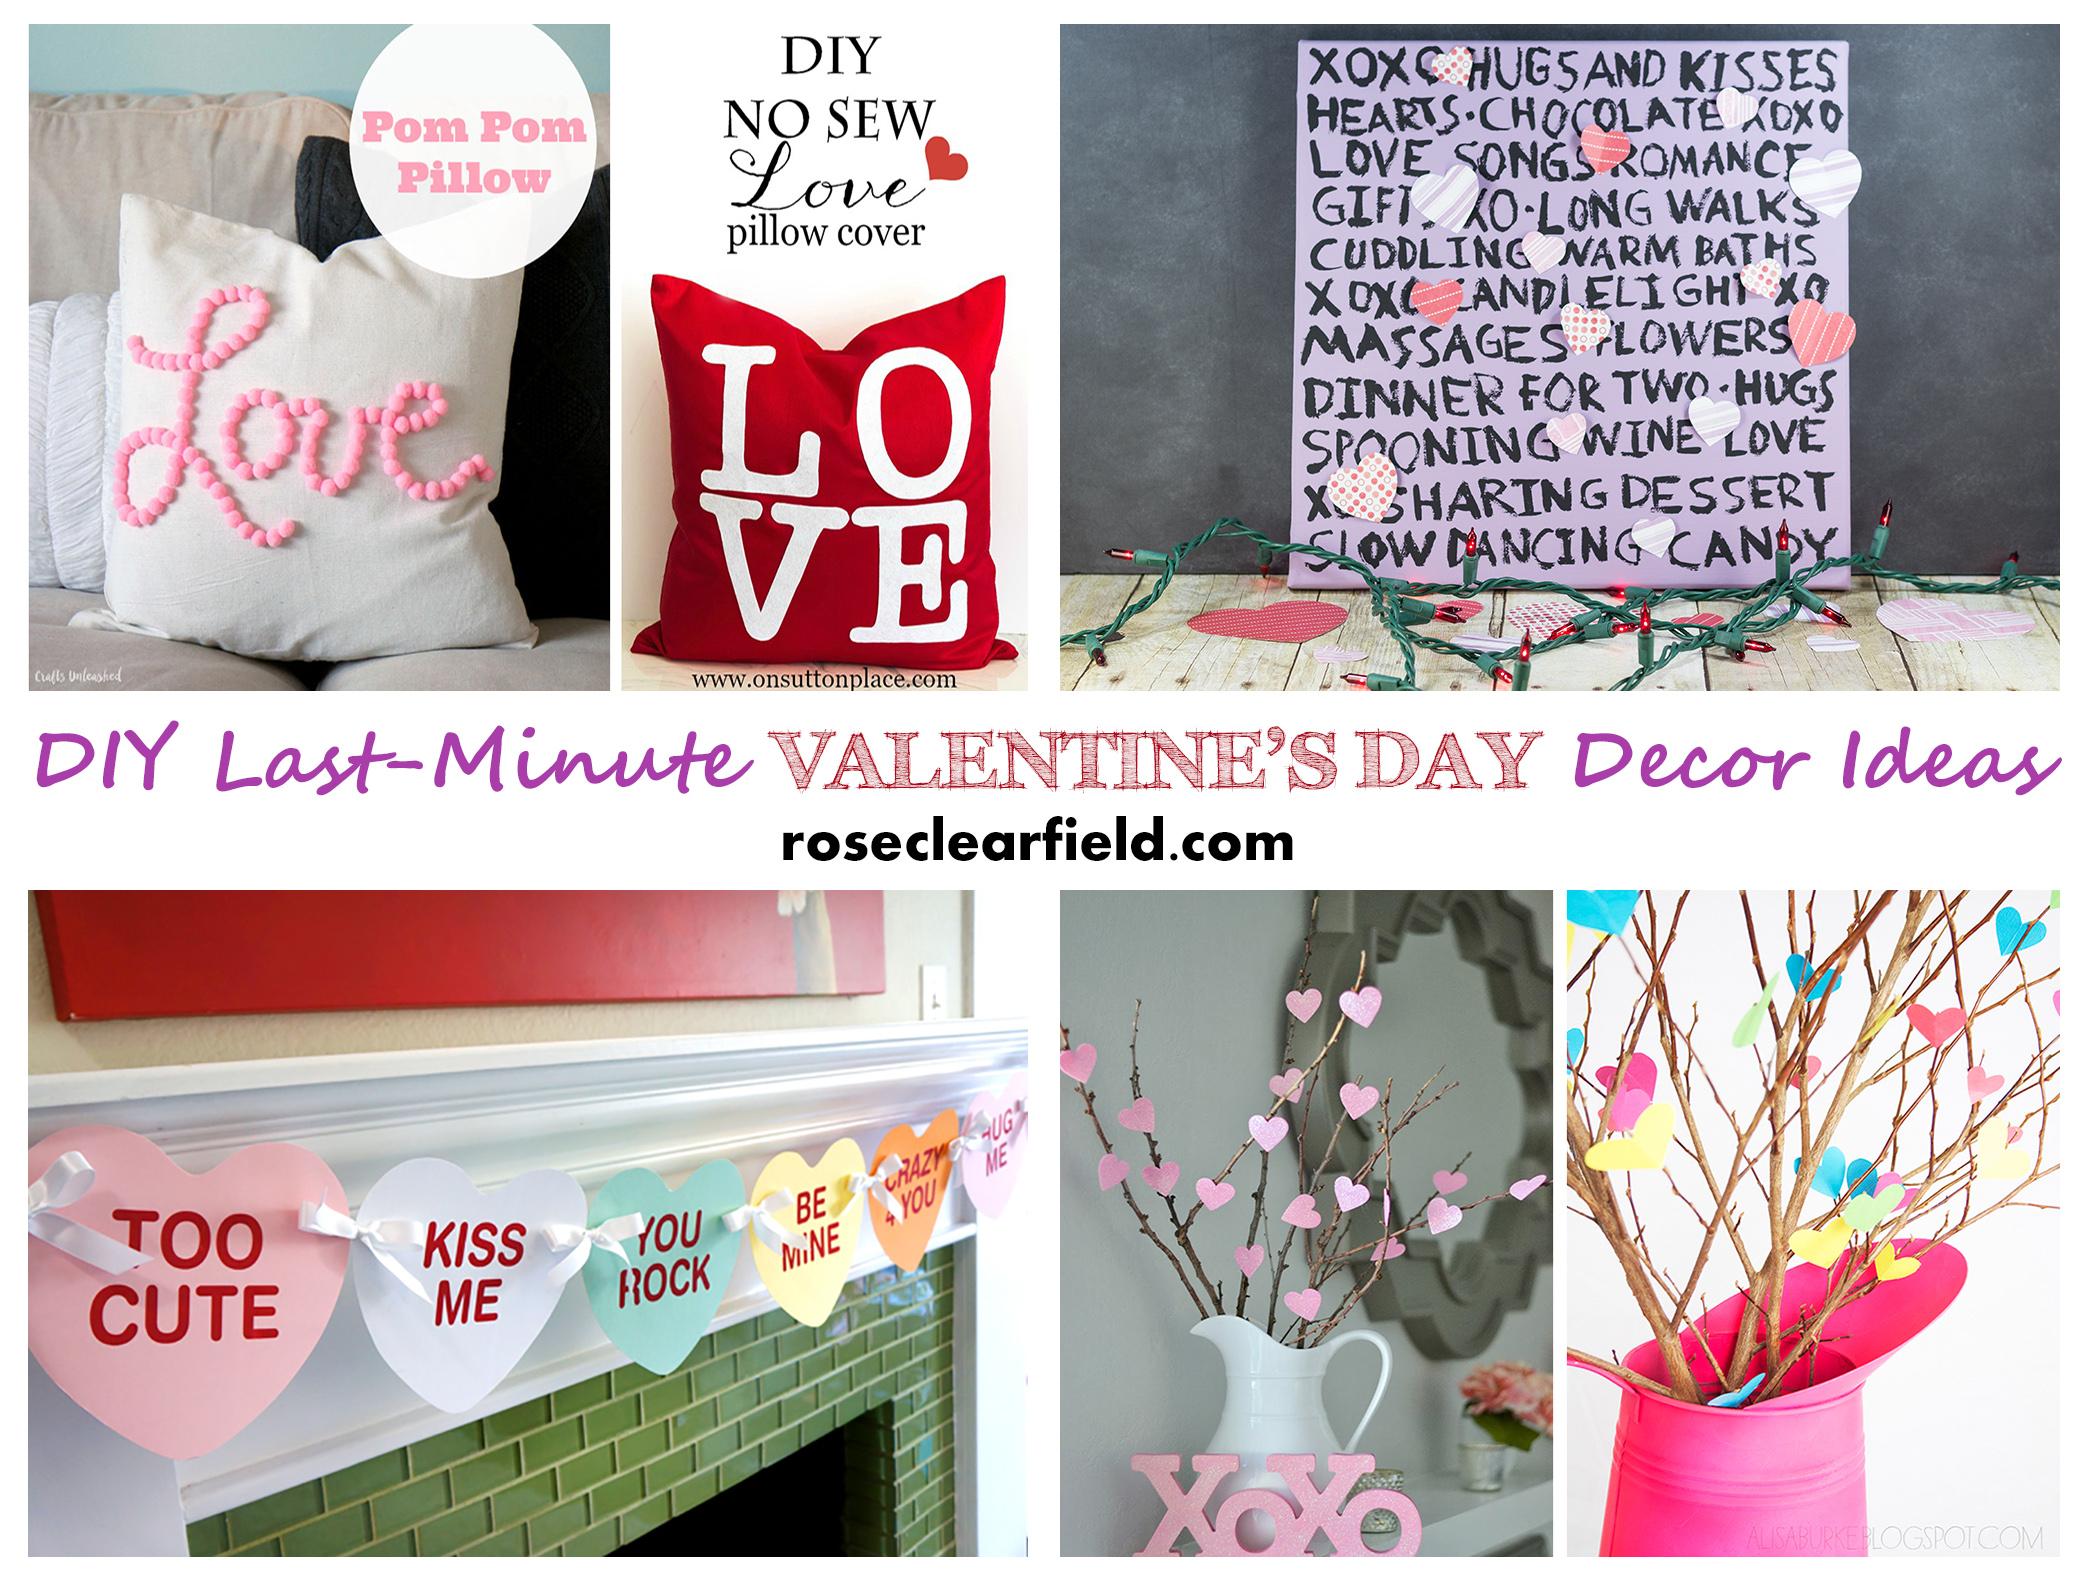 Last Minute DIY Valentine's Day Decor Ideas...create cute, festive decor quickly without breaking the bank! | http://www.roseclearfield.com